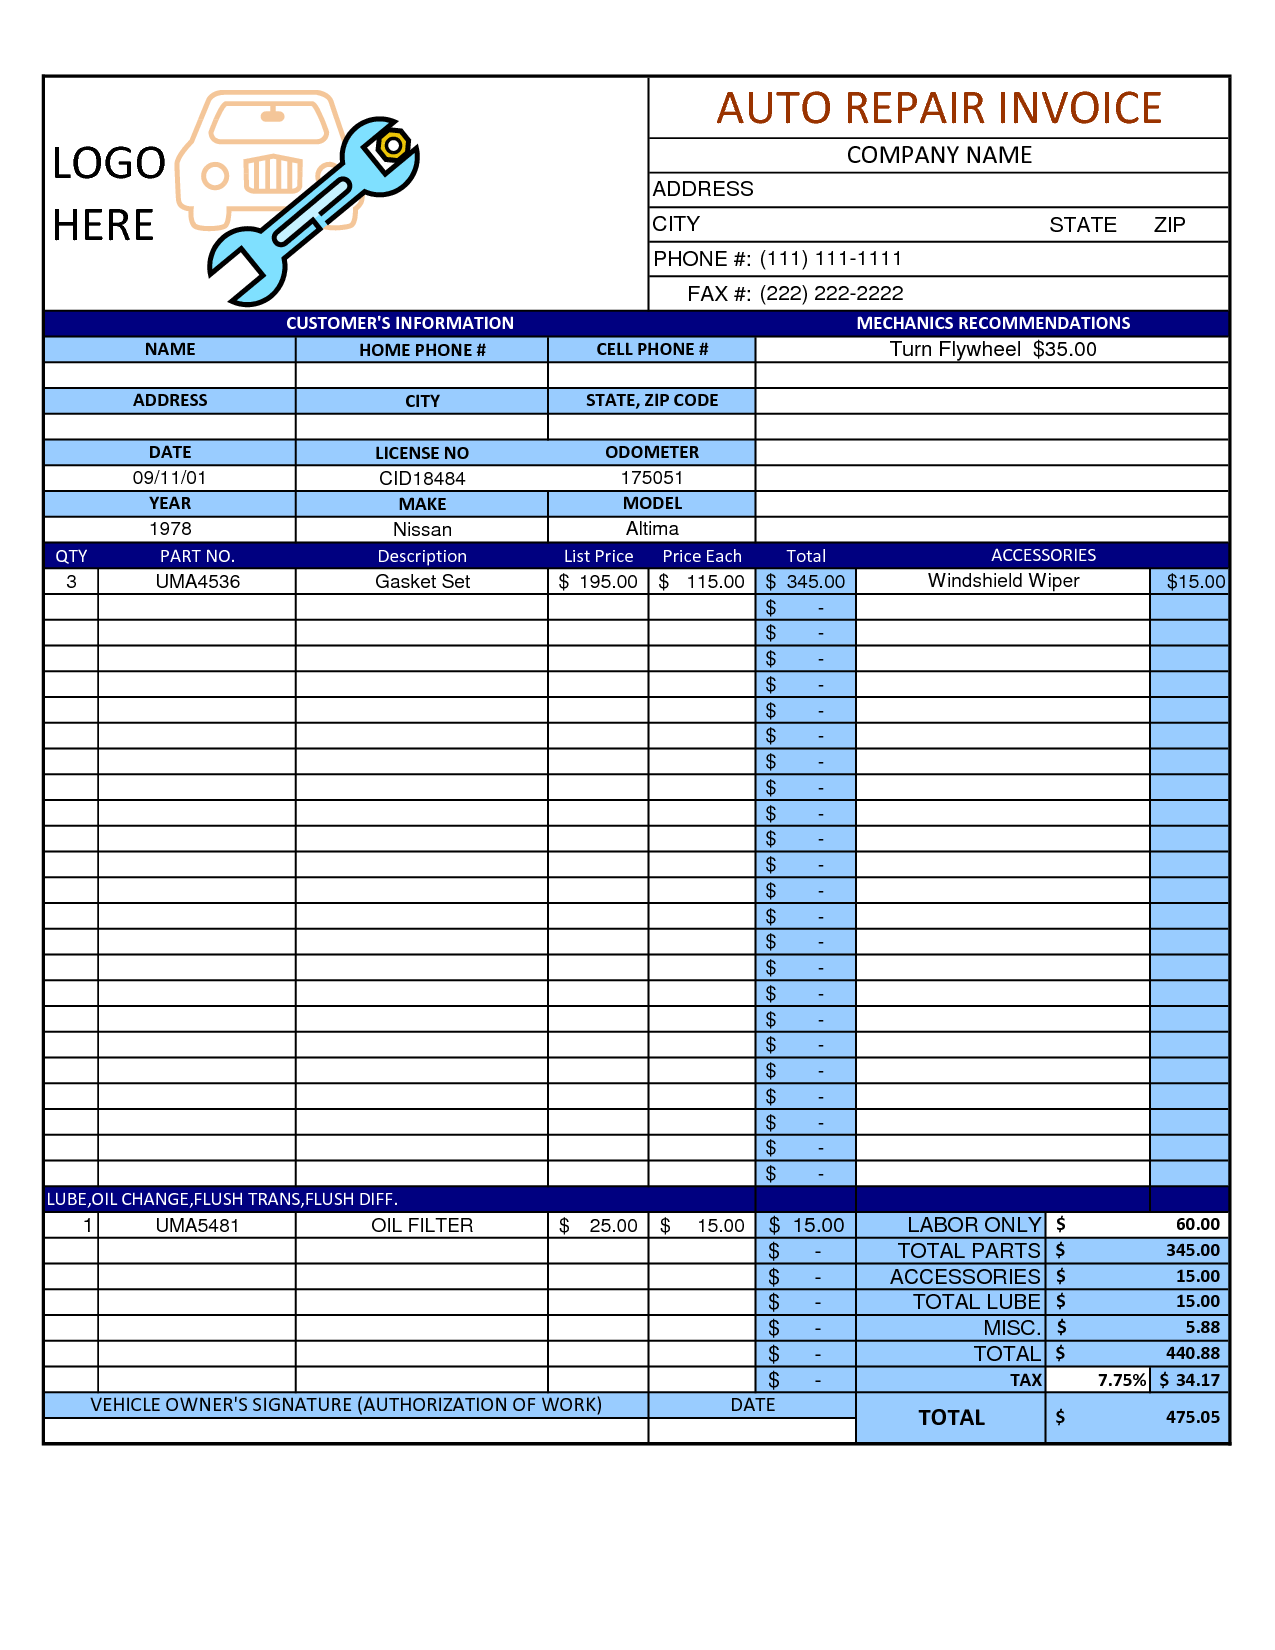 Mechanic Shop Invoice | scope of work template … | Pinteres…